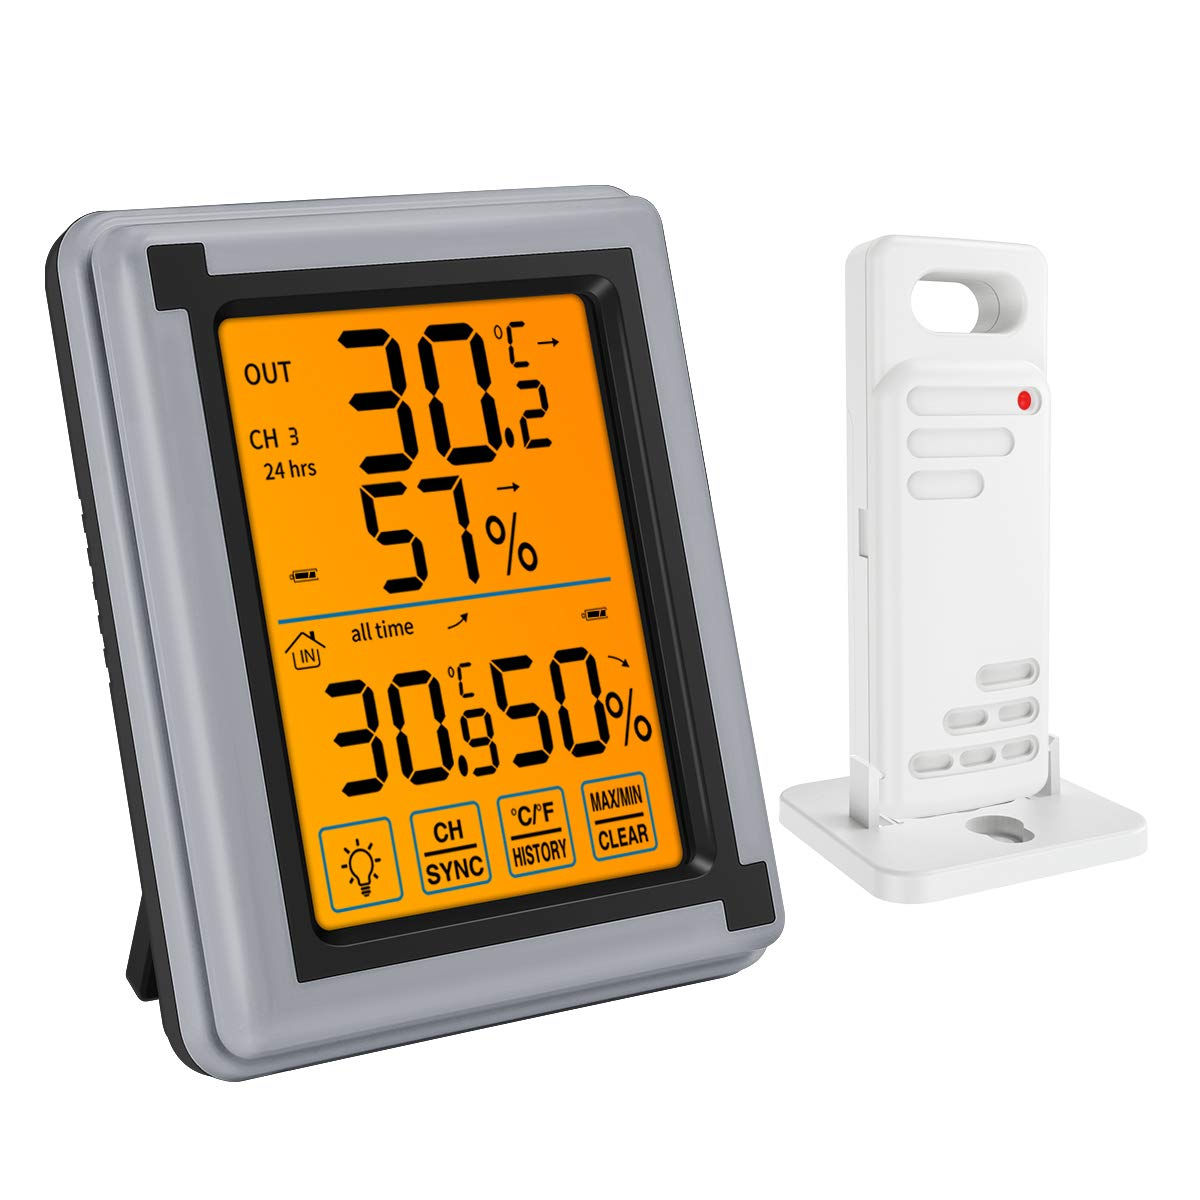 KeeKit [New Version Indoor Outdoor Thermometer, Wireless Temperature Humidity Monitor, Digital Hygrometer Gauge Meter with Touch LCD Backlight, MAX/MIN Record for Home, Office, Baby Room - Gray